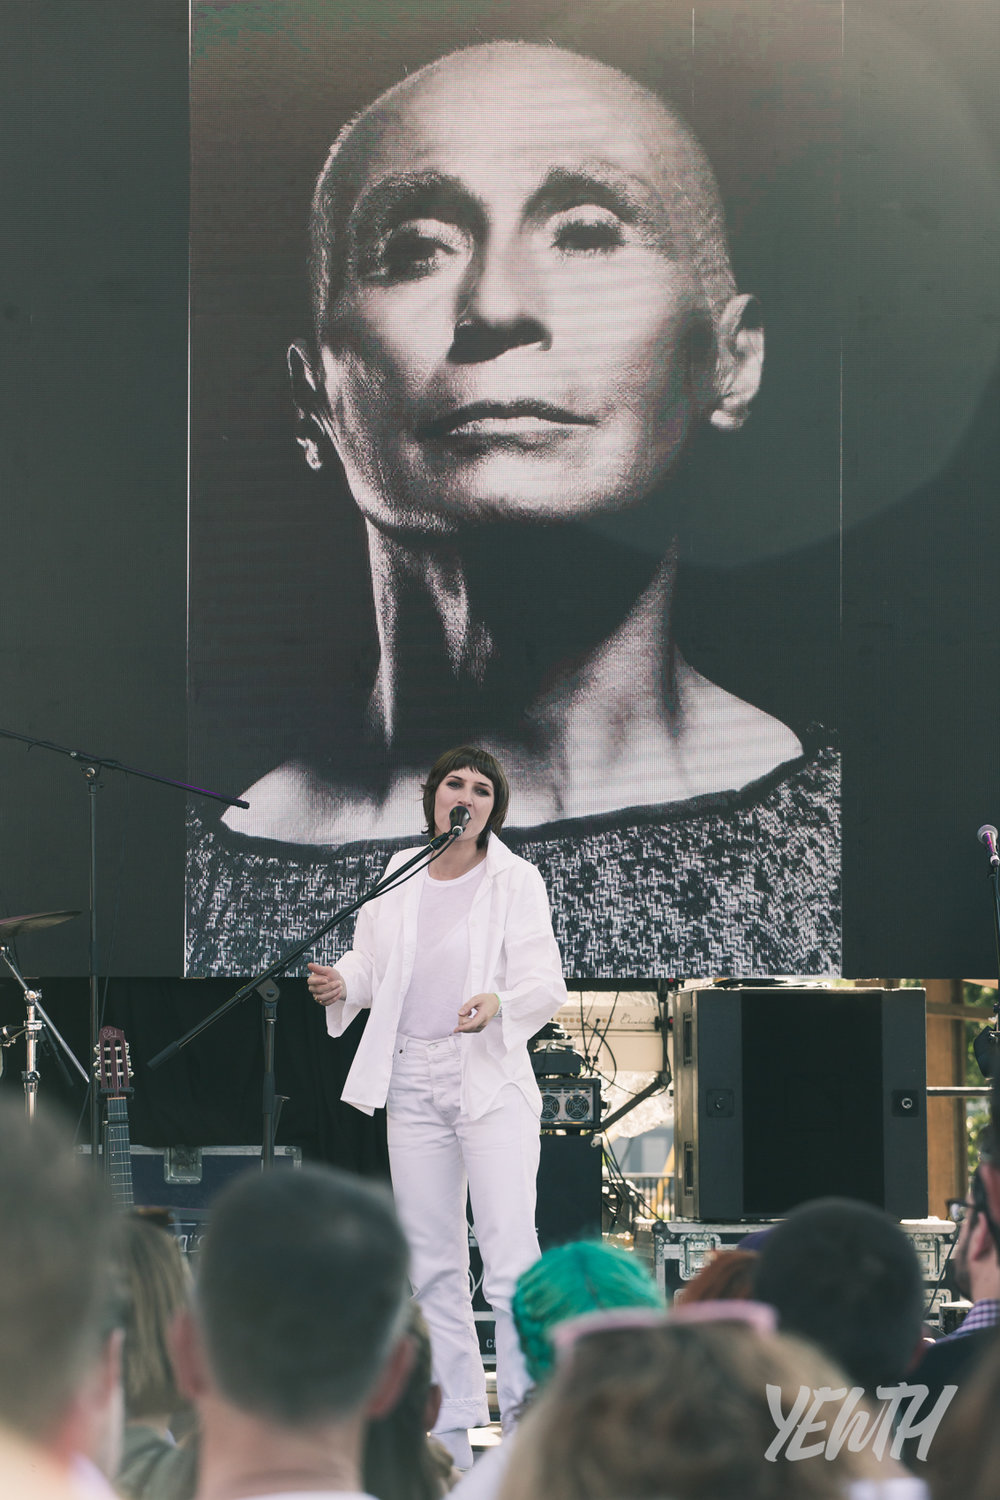 Laneway 2018 Adel Yewth Dave Court (144 of 340).jpg